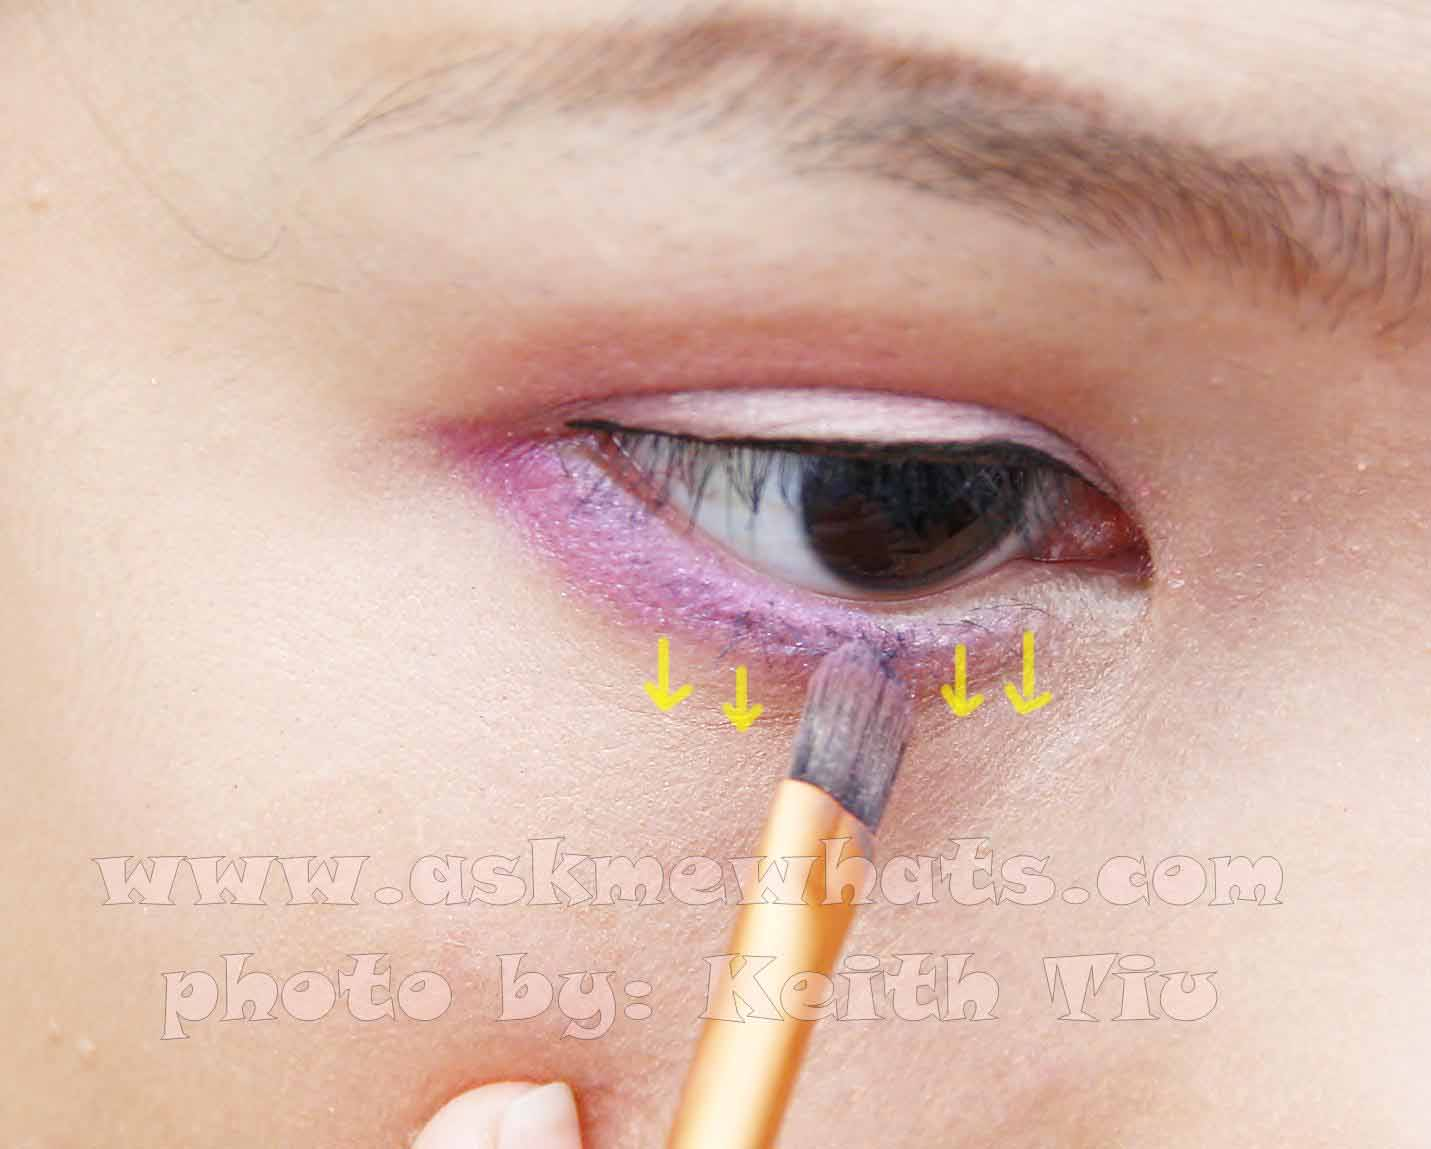 If You Were Really Good With Application And You Don't See Any Smudges,  Feel Free To Apply Your Favorite Eyeshadow Shade Underneath The Lashes To  Make The